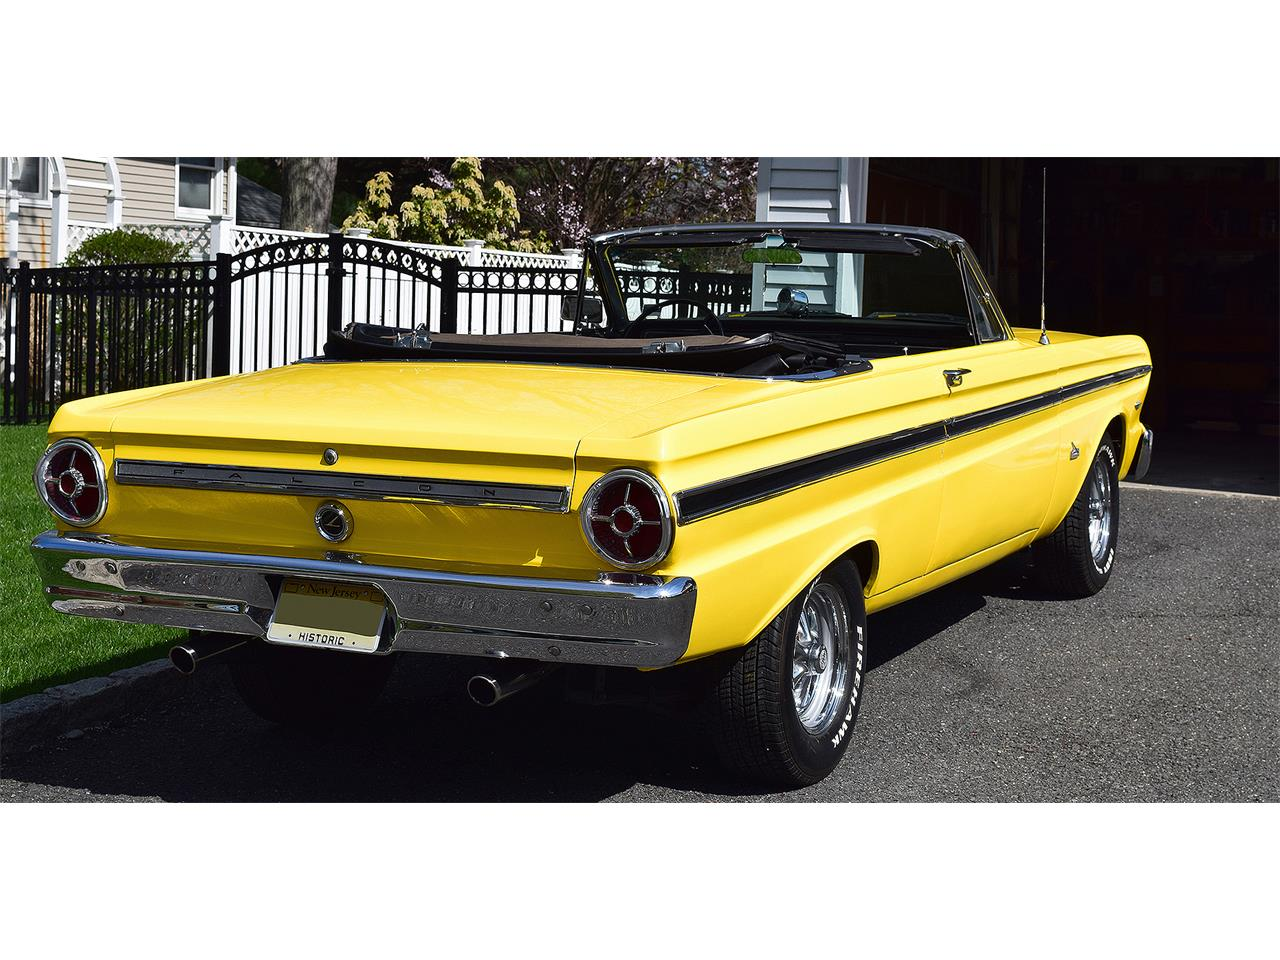 Large Picture of 1965 Falcon Futura located in New Jersey - $20,000.00 Offered by a Private Seller - QEVQ